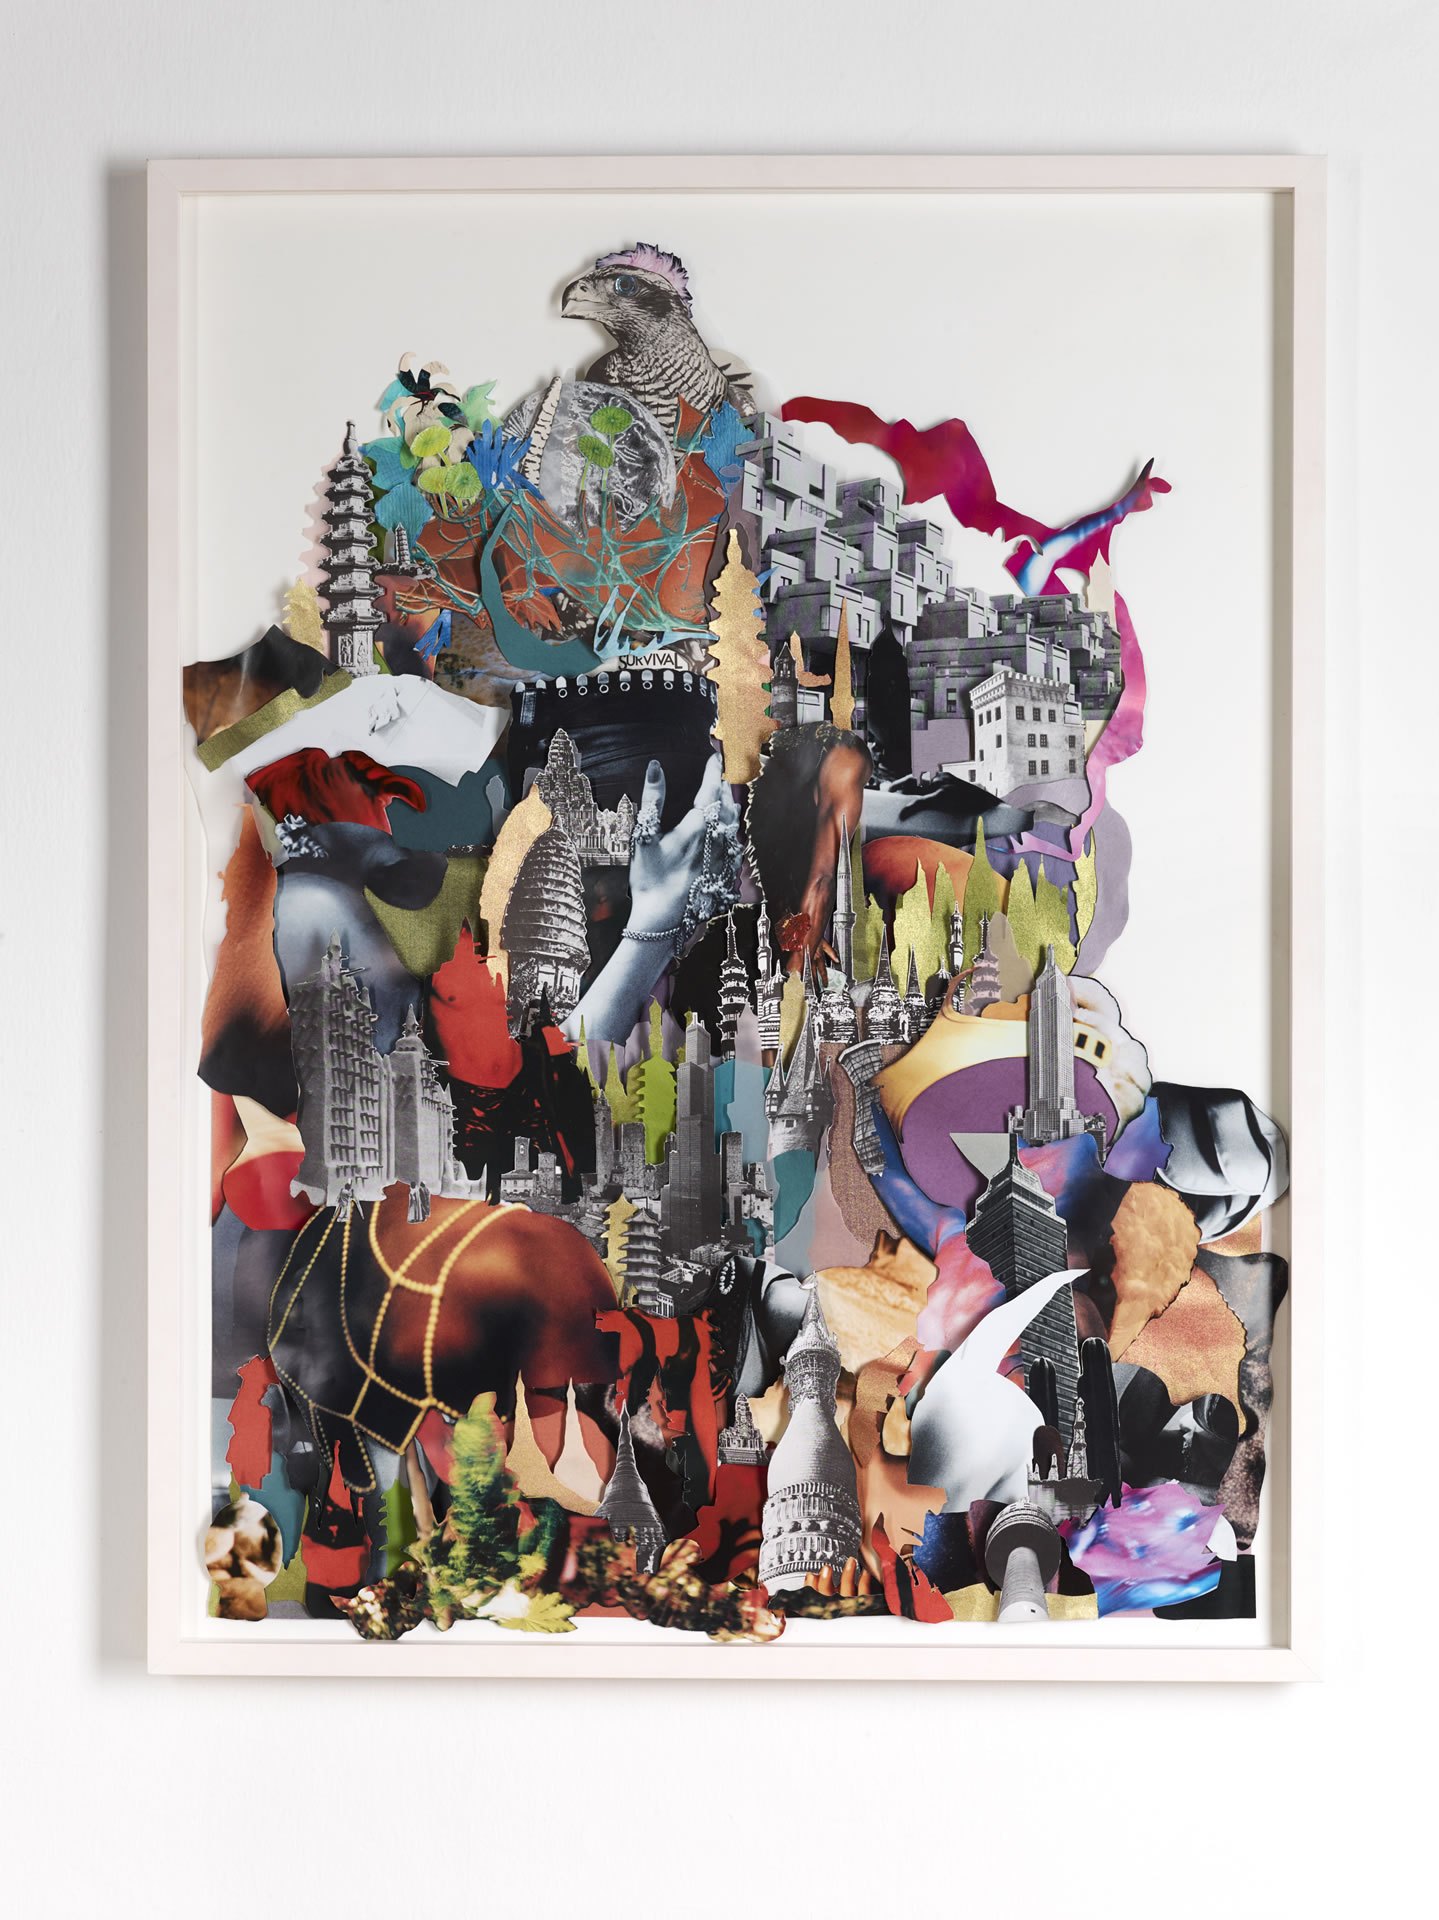 Galerie3 | Karen Elliot | Tower Of Survival | Collage | 2017 . 18 | 85 x 65 cm | Foto: Johannes Puch